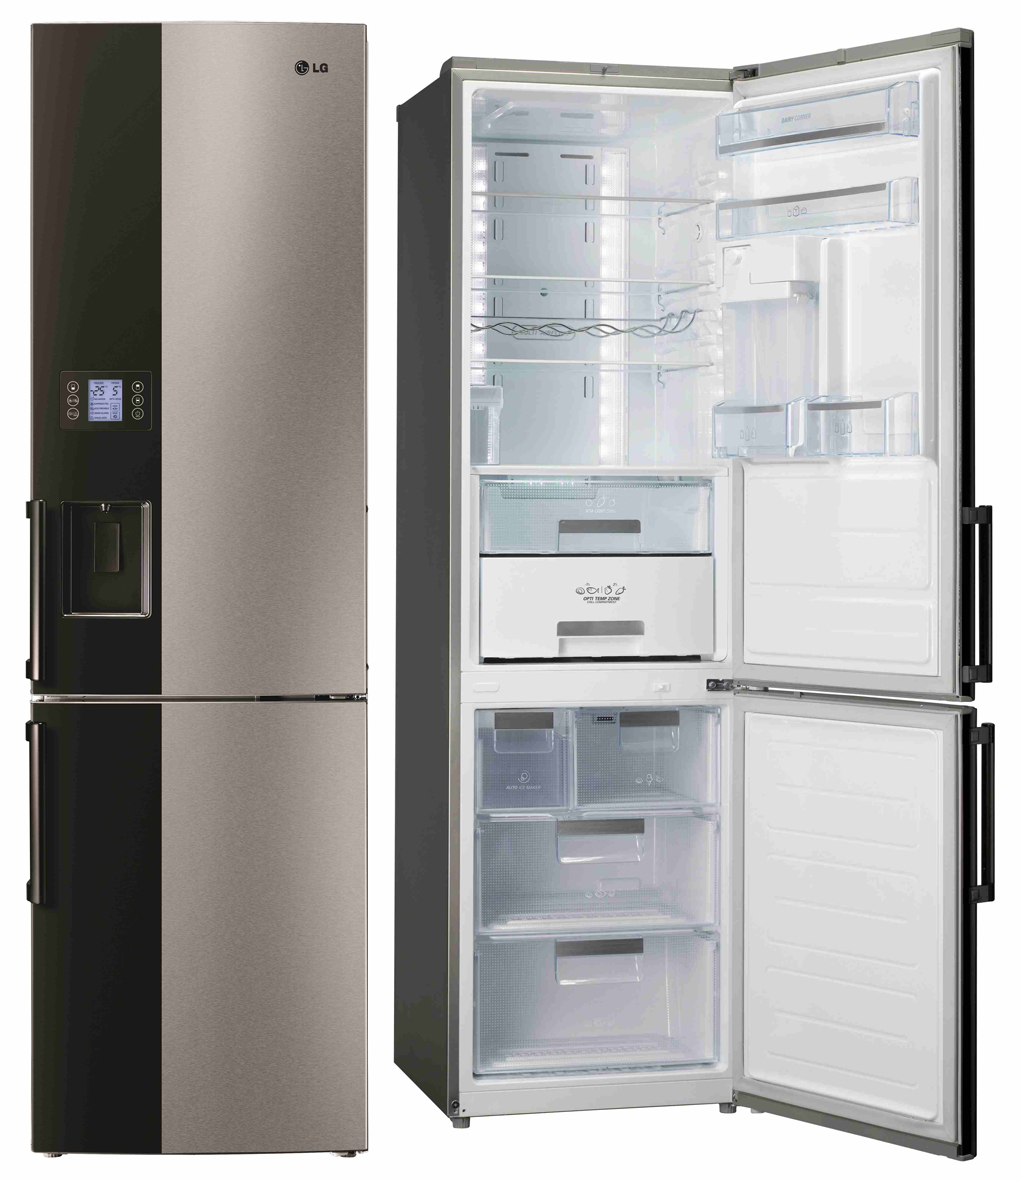 lg k hl gefrierkombination gb 7143 a2bz mit auto icemaker. Black Bedroom Furniture Sets. Home Design Ideas